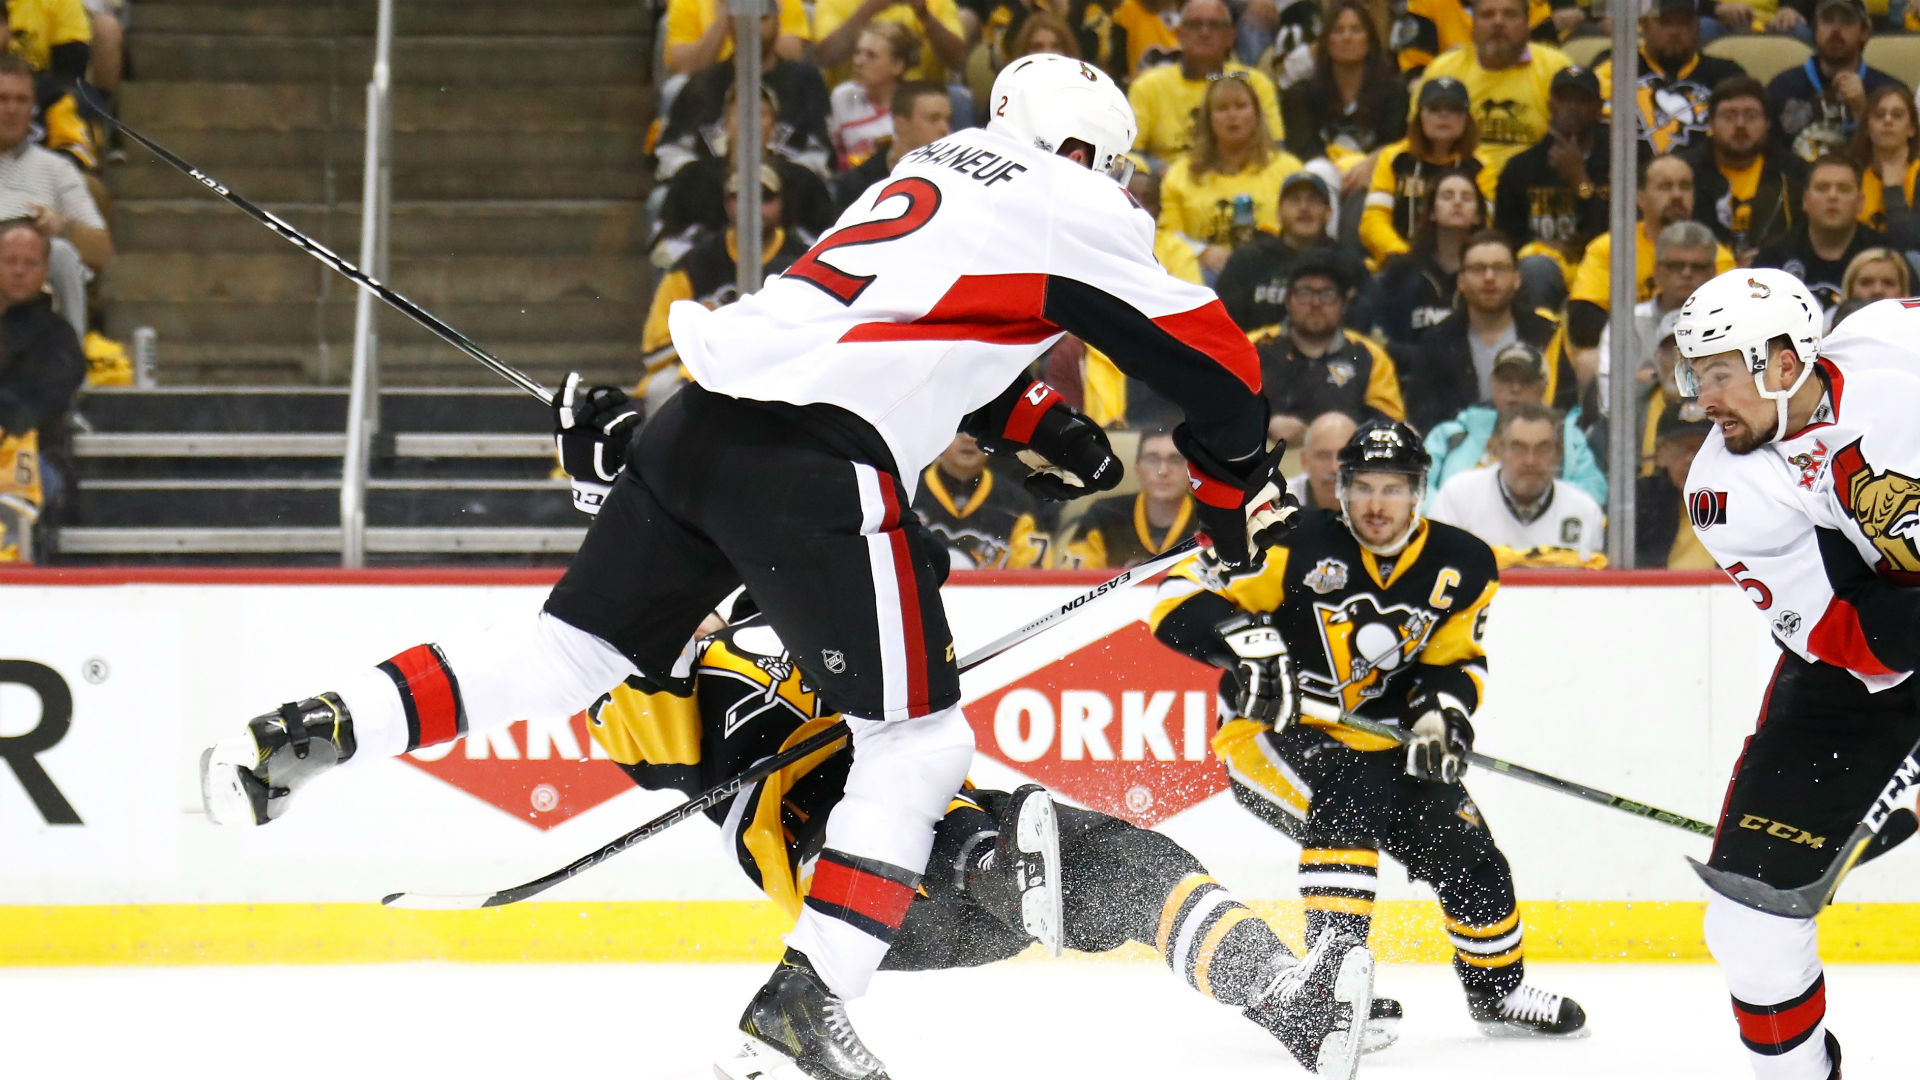 Hornqvist, Rust, Schultz out for Game 3 vs. Senators